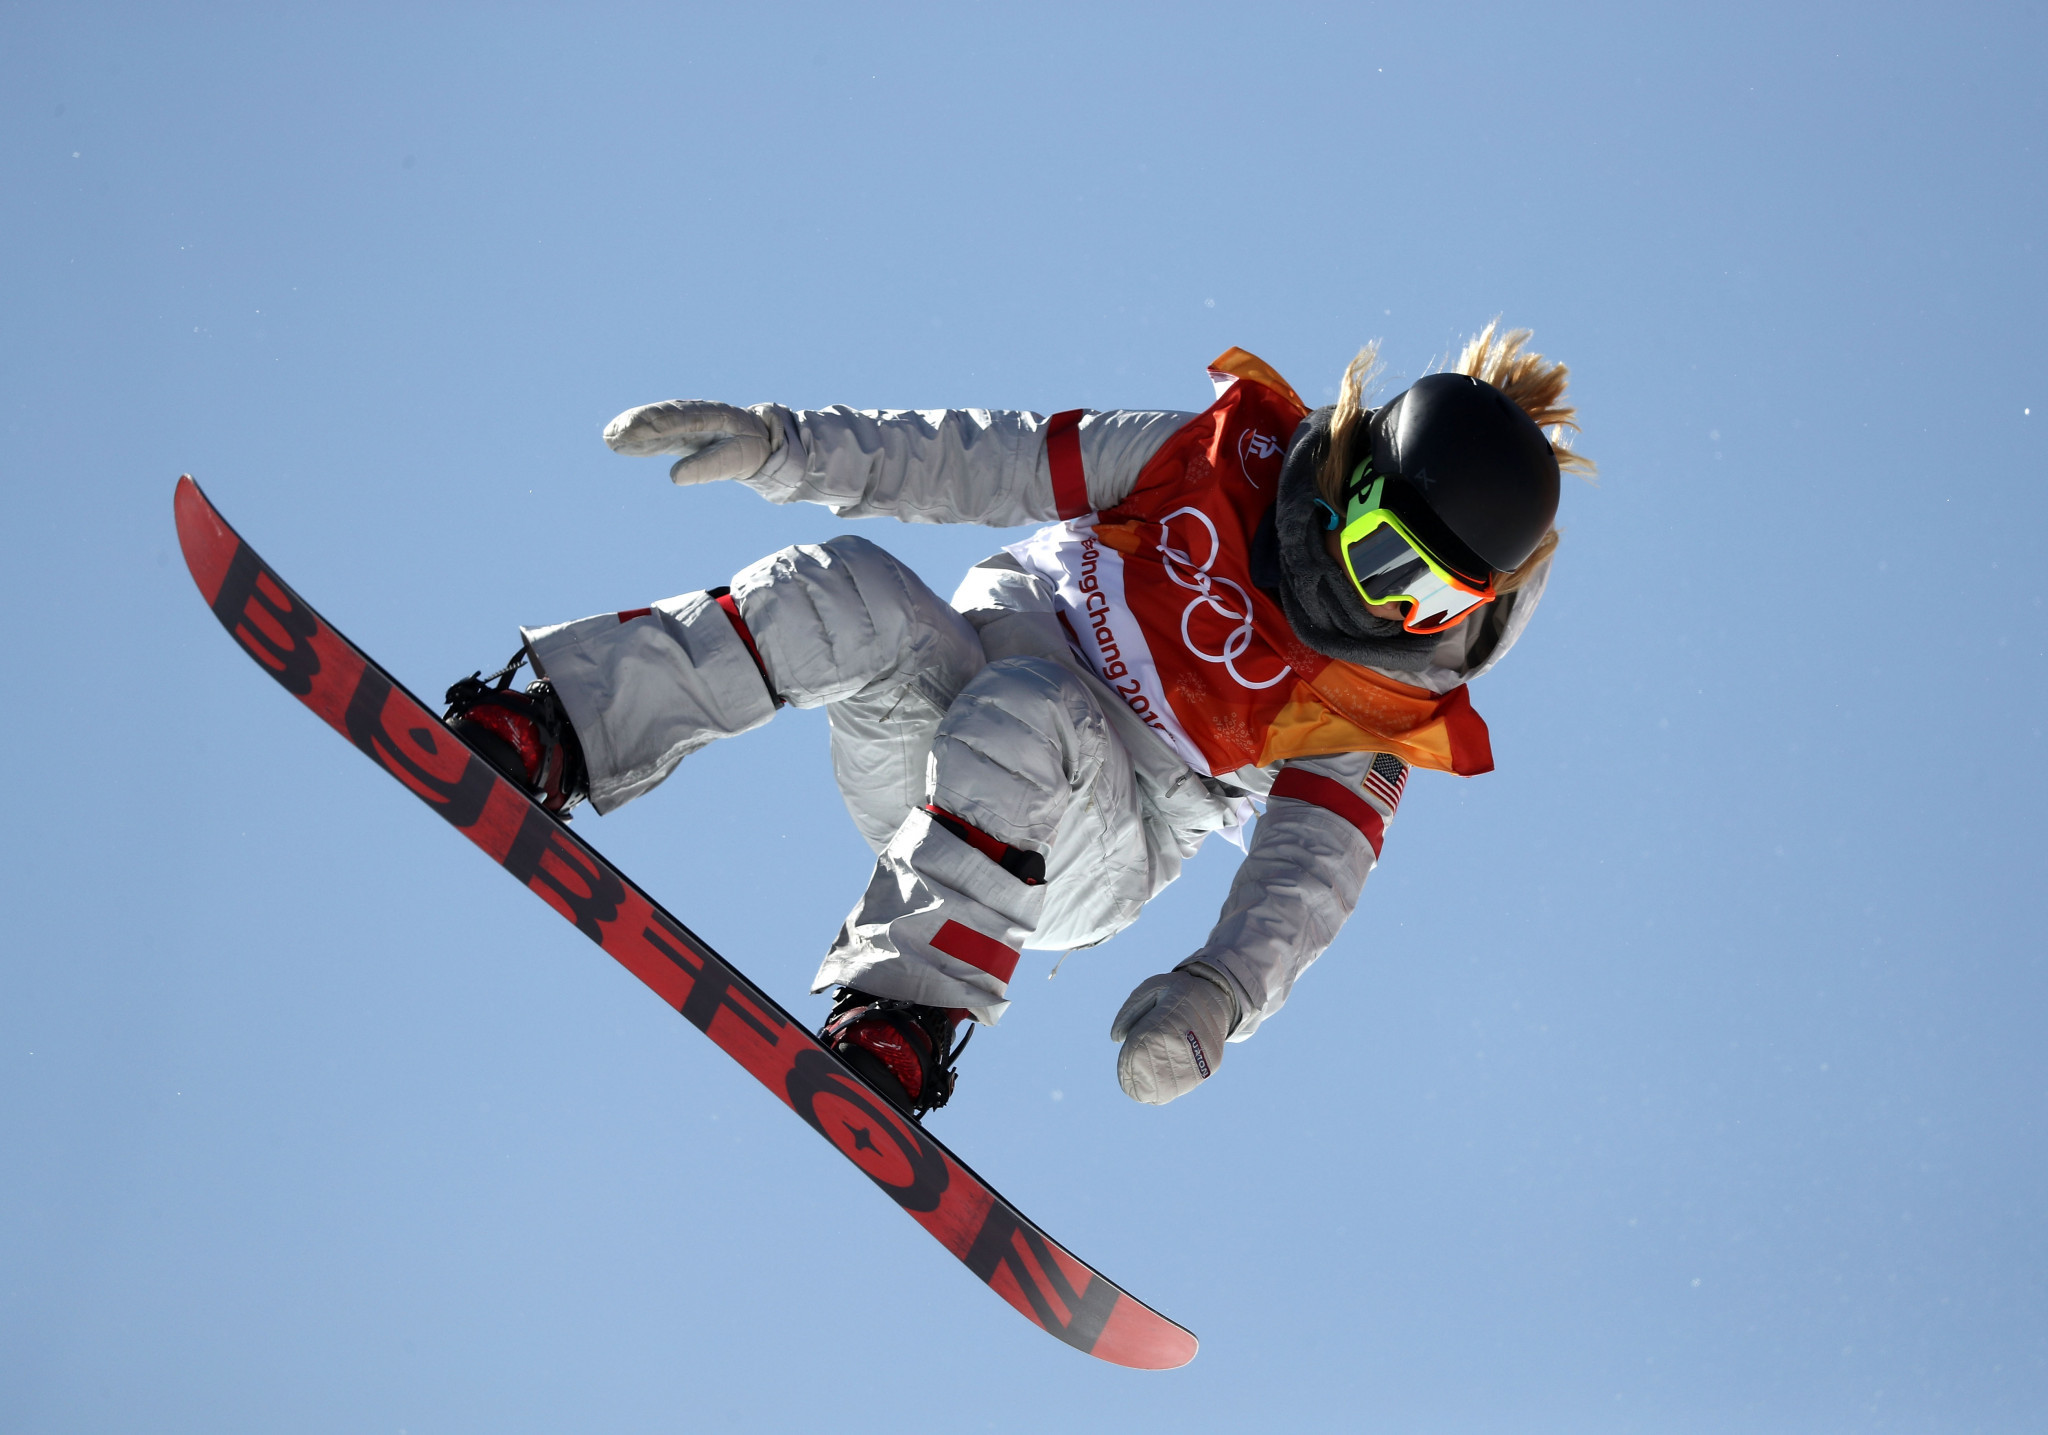 Olympic champion Kim out to defend US Grand Prix halfpipe title as FIS Snowboard World Cup stops in Copper Mountain